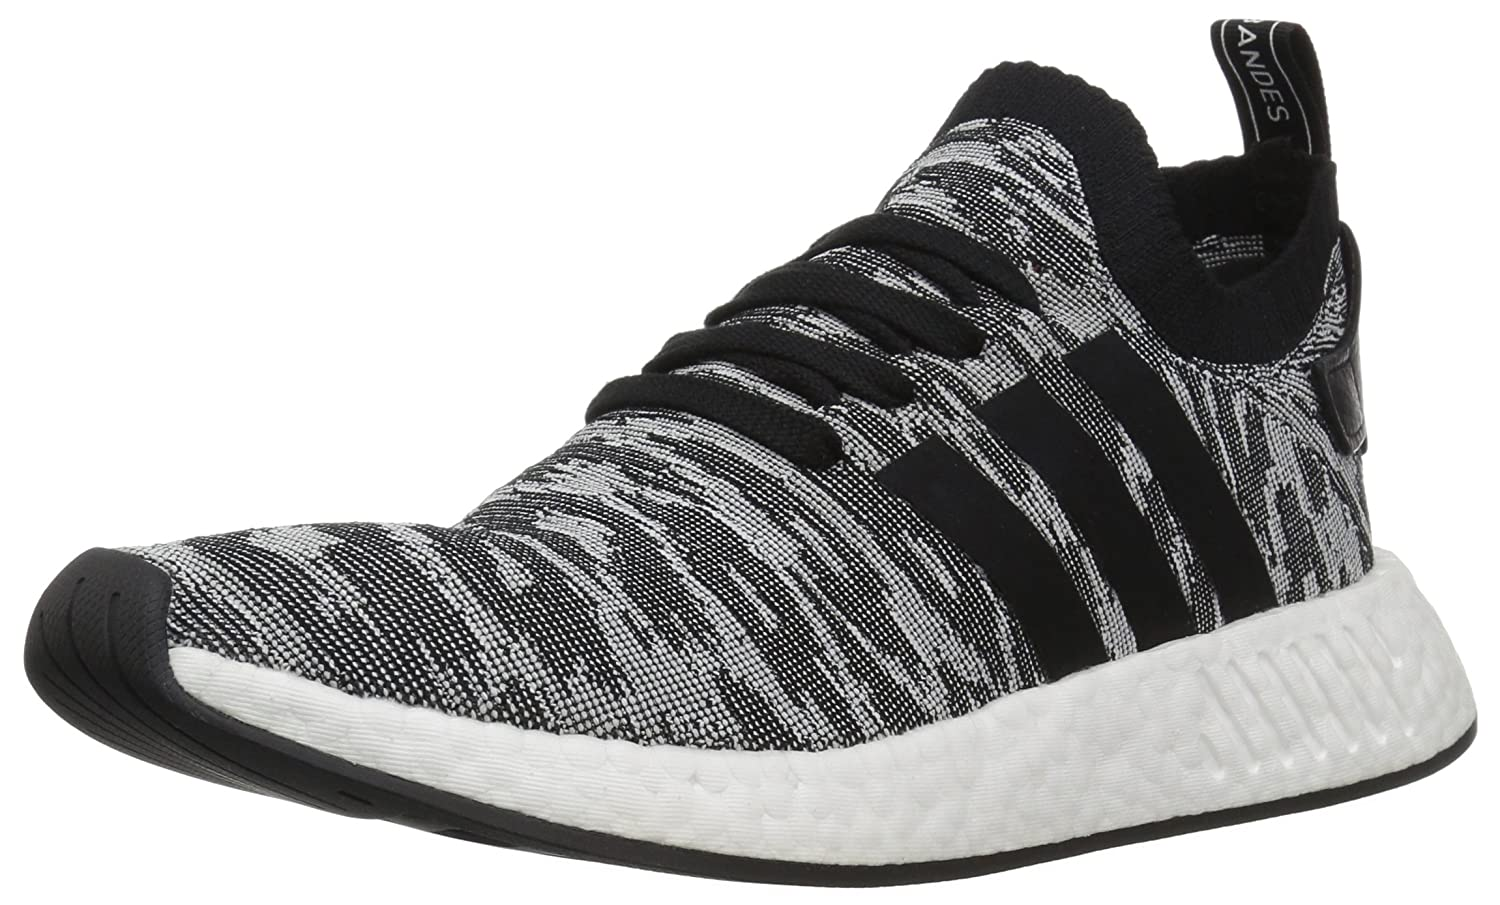 Black Black White Adidas ORIGINALS Mens NMD_r2 Pk Running shoes